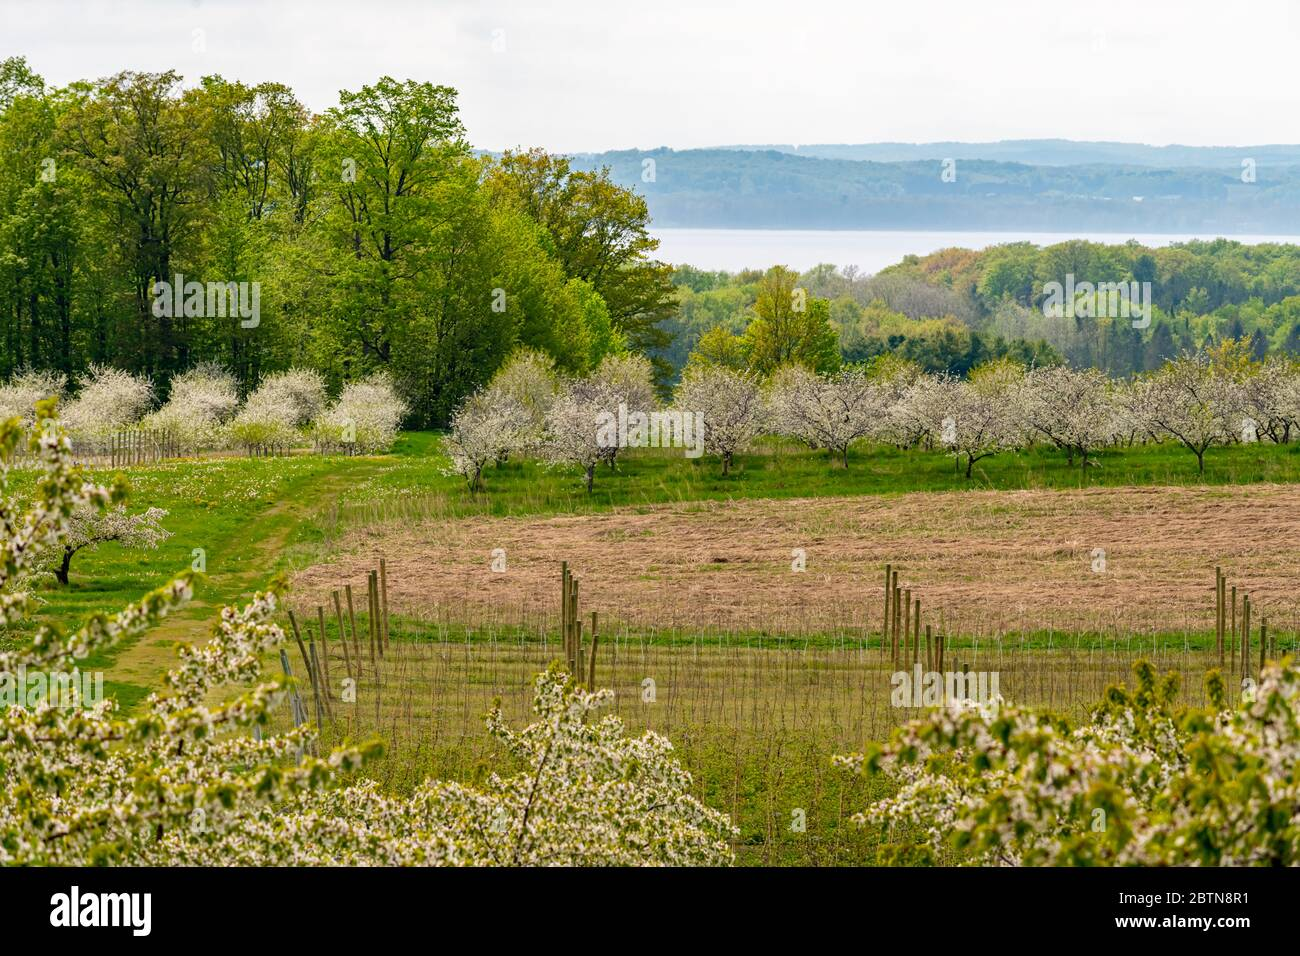 View of blooming cherry trees in orchard with vineyards in the foreground, and Grand Traverse Bay in the background in Spring. Stock Photo